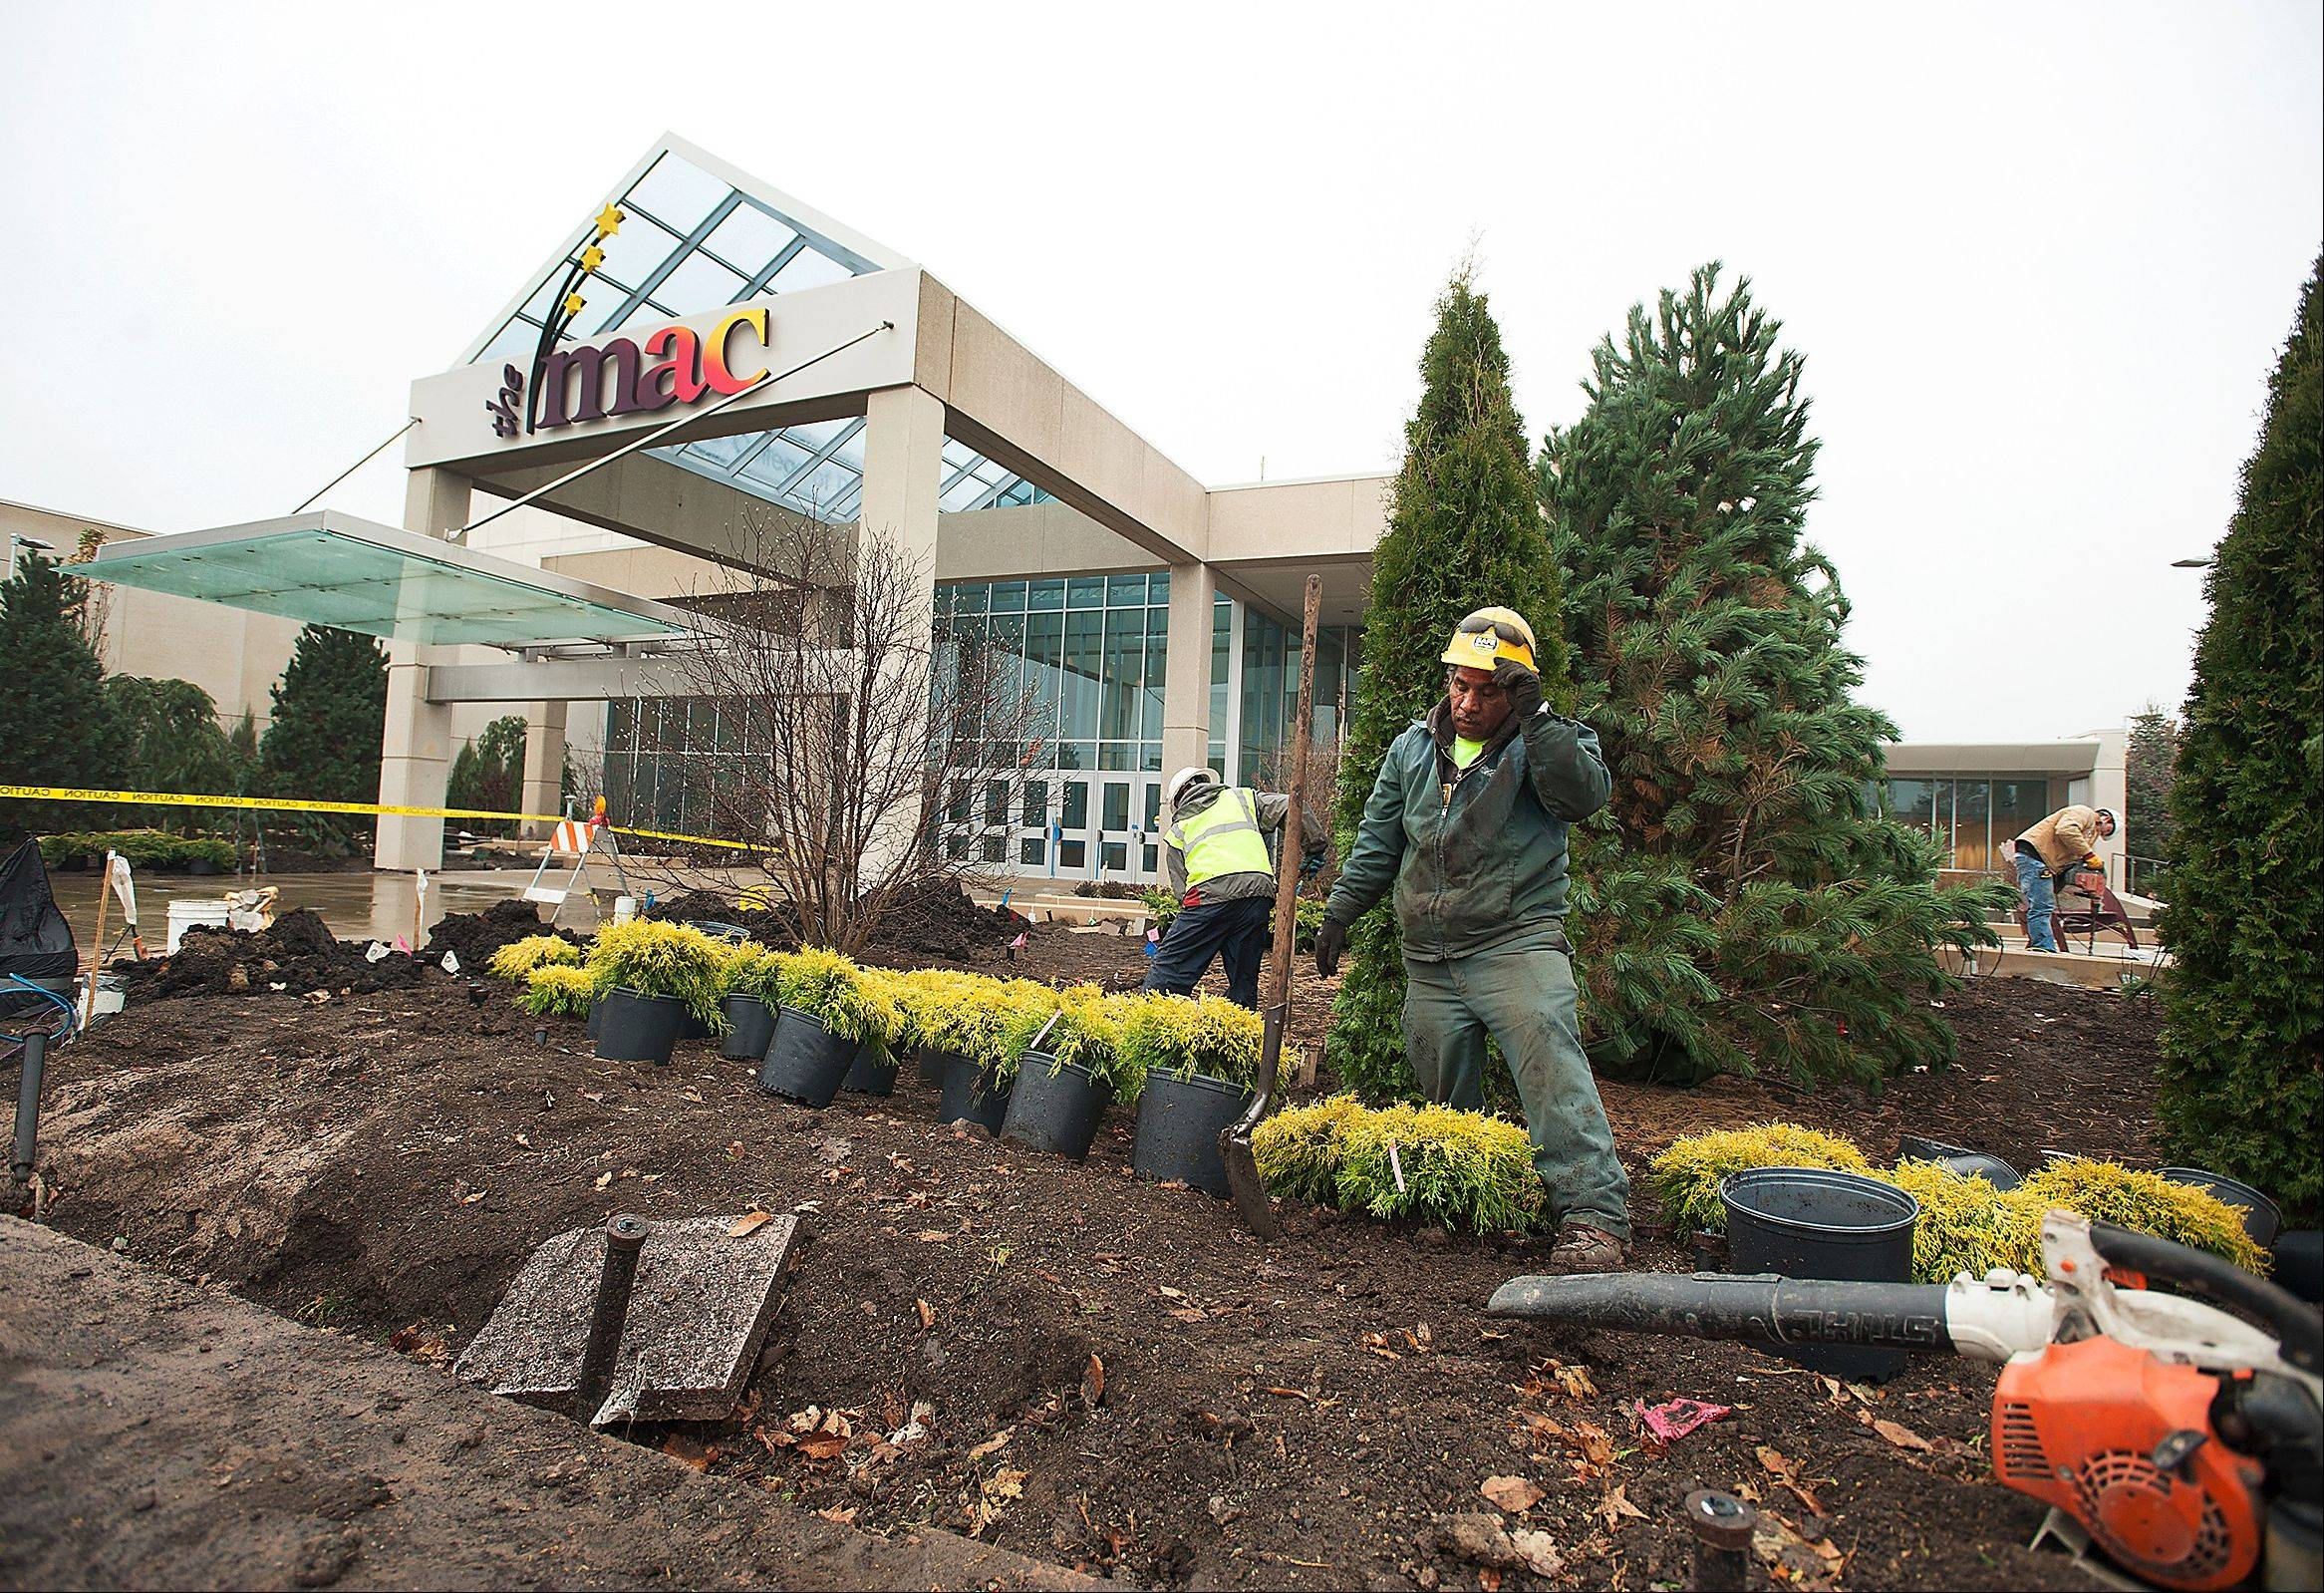 Crews install new landscaping in front of the McAninch Arts Center, which is scheduled to reopen in February after a 14-month, $35 million renovation project.